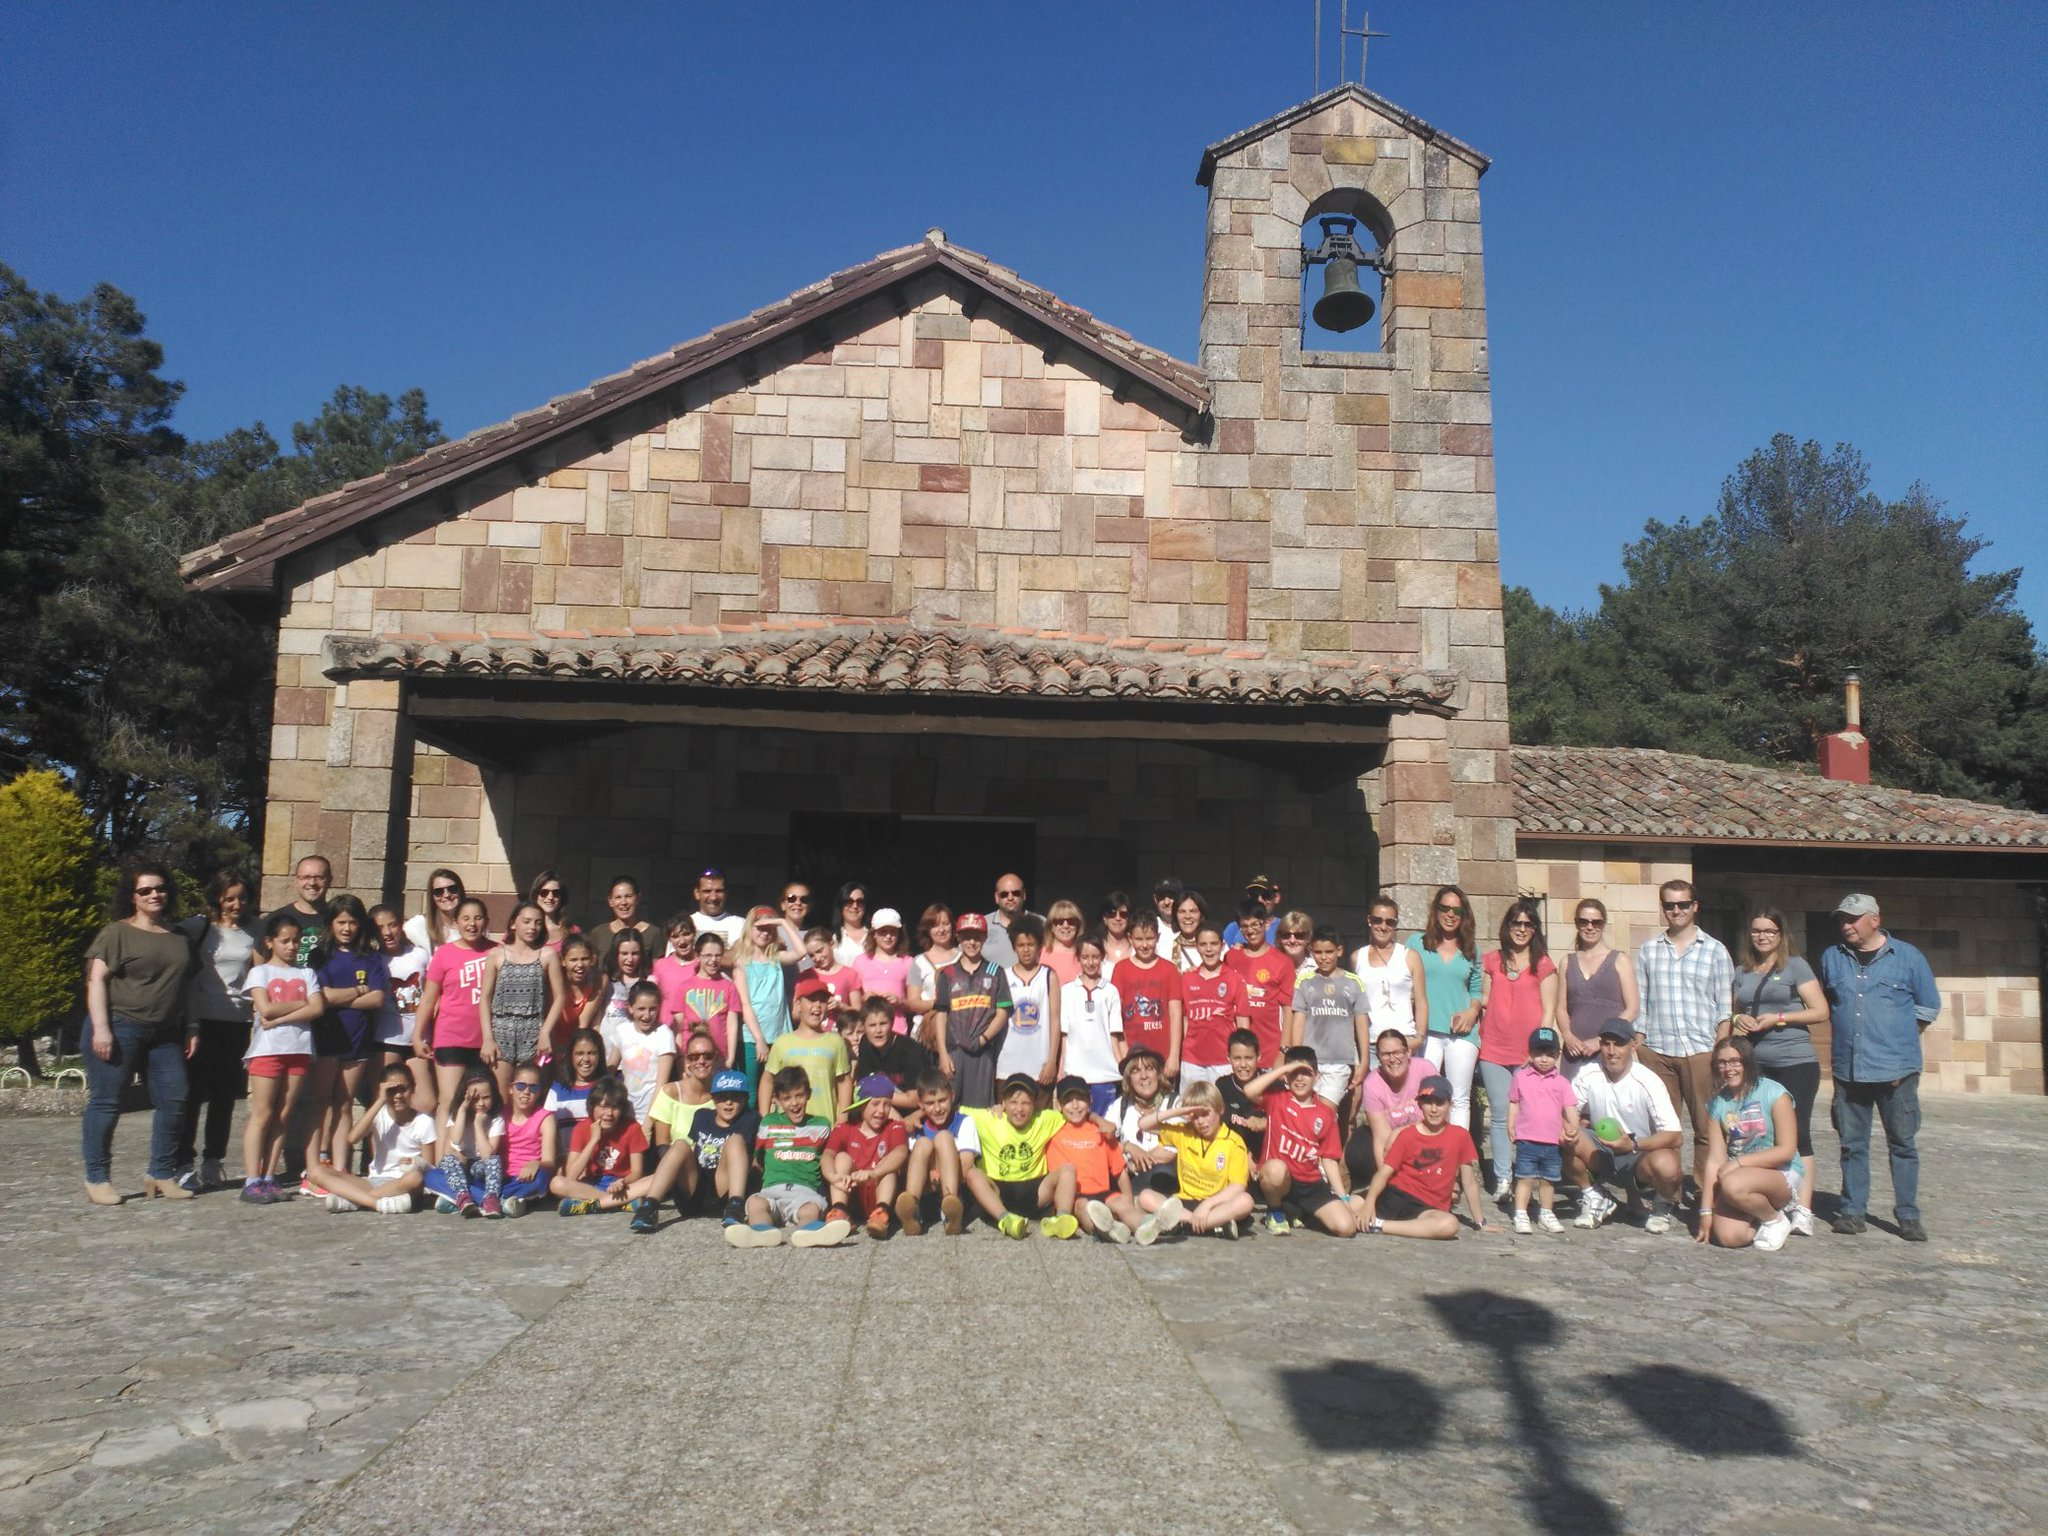 #etwinning implies students and teachers but also families. Great experience between @HTPDSchool and @colsangregorio #etwinning_cyl https://t.co/omPOqX0laZ